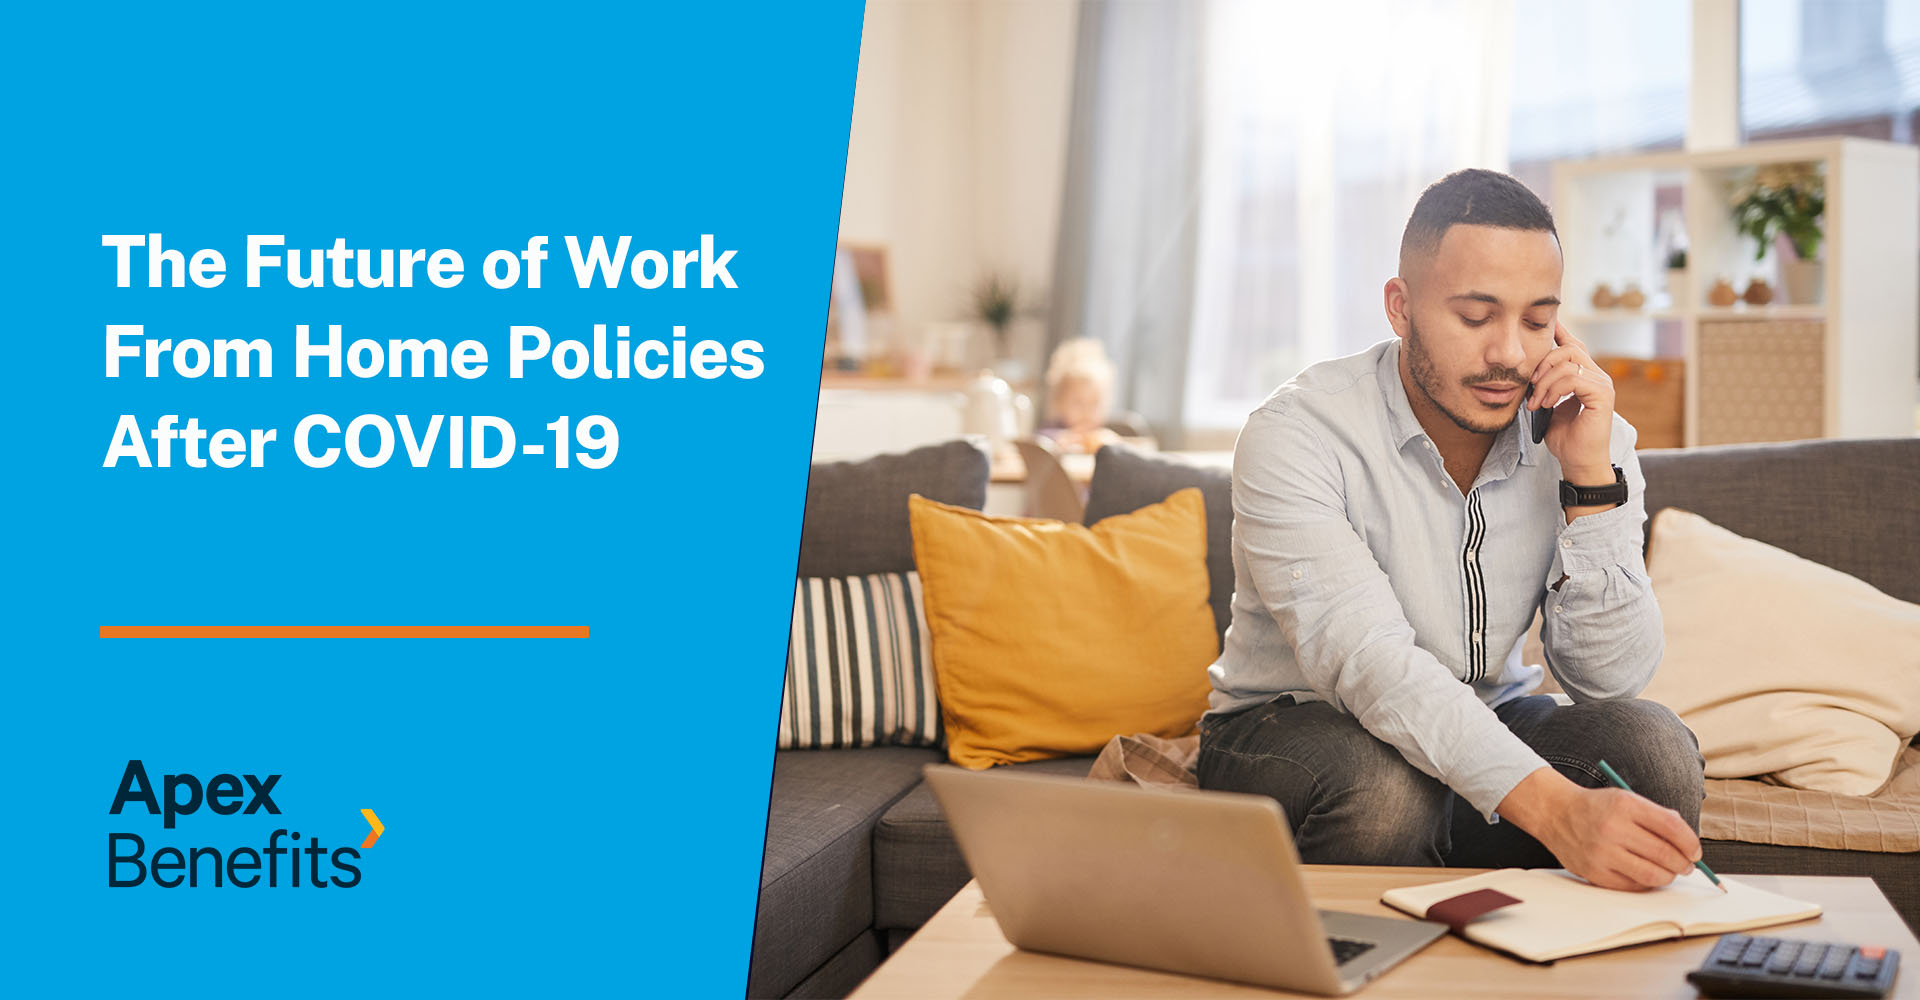 How Will COVID-19 Impact Remote Work Policies in the Future?